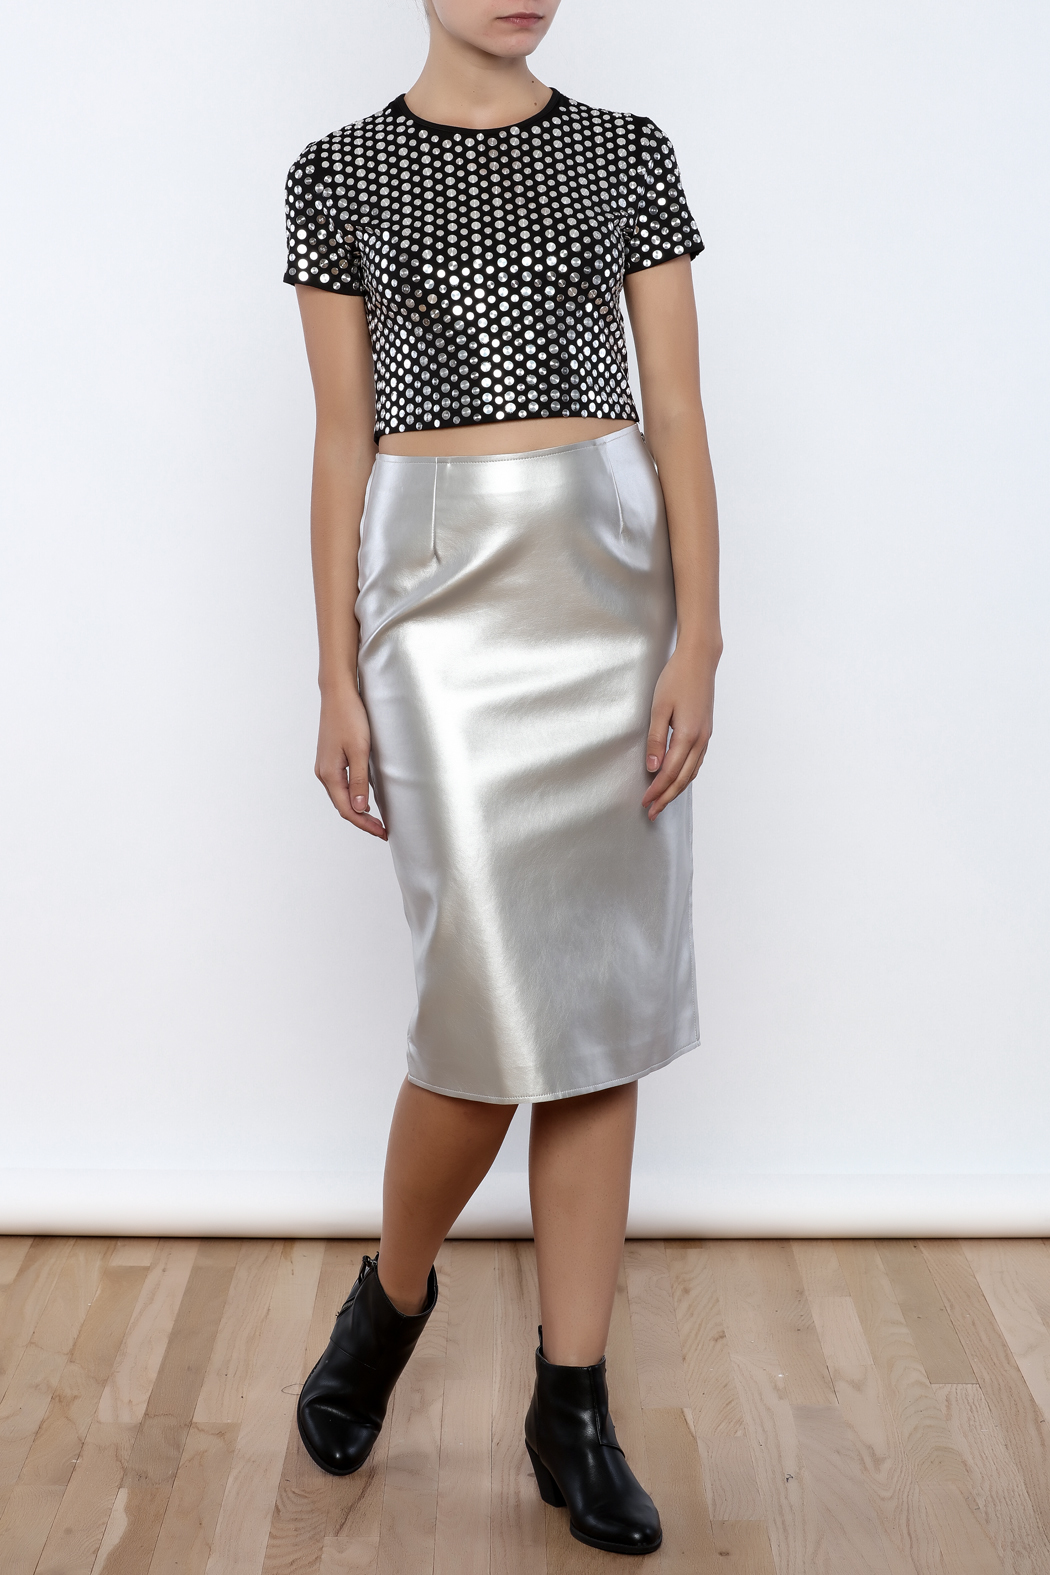 J.O.A. FAux Leather Pencil Skirt - Front Full Image